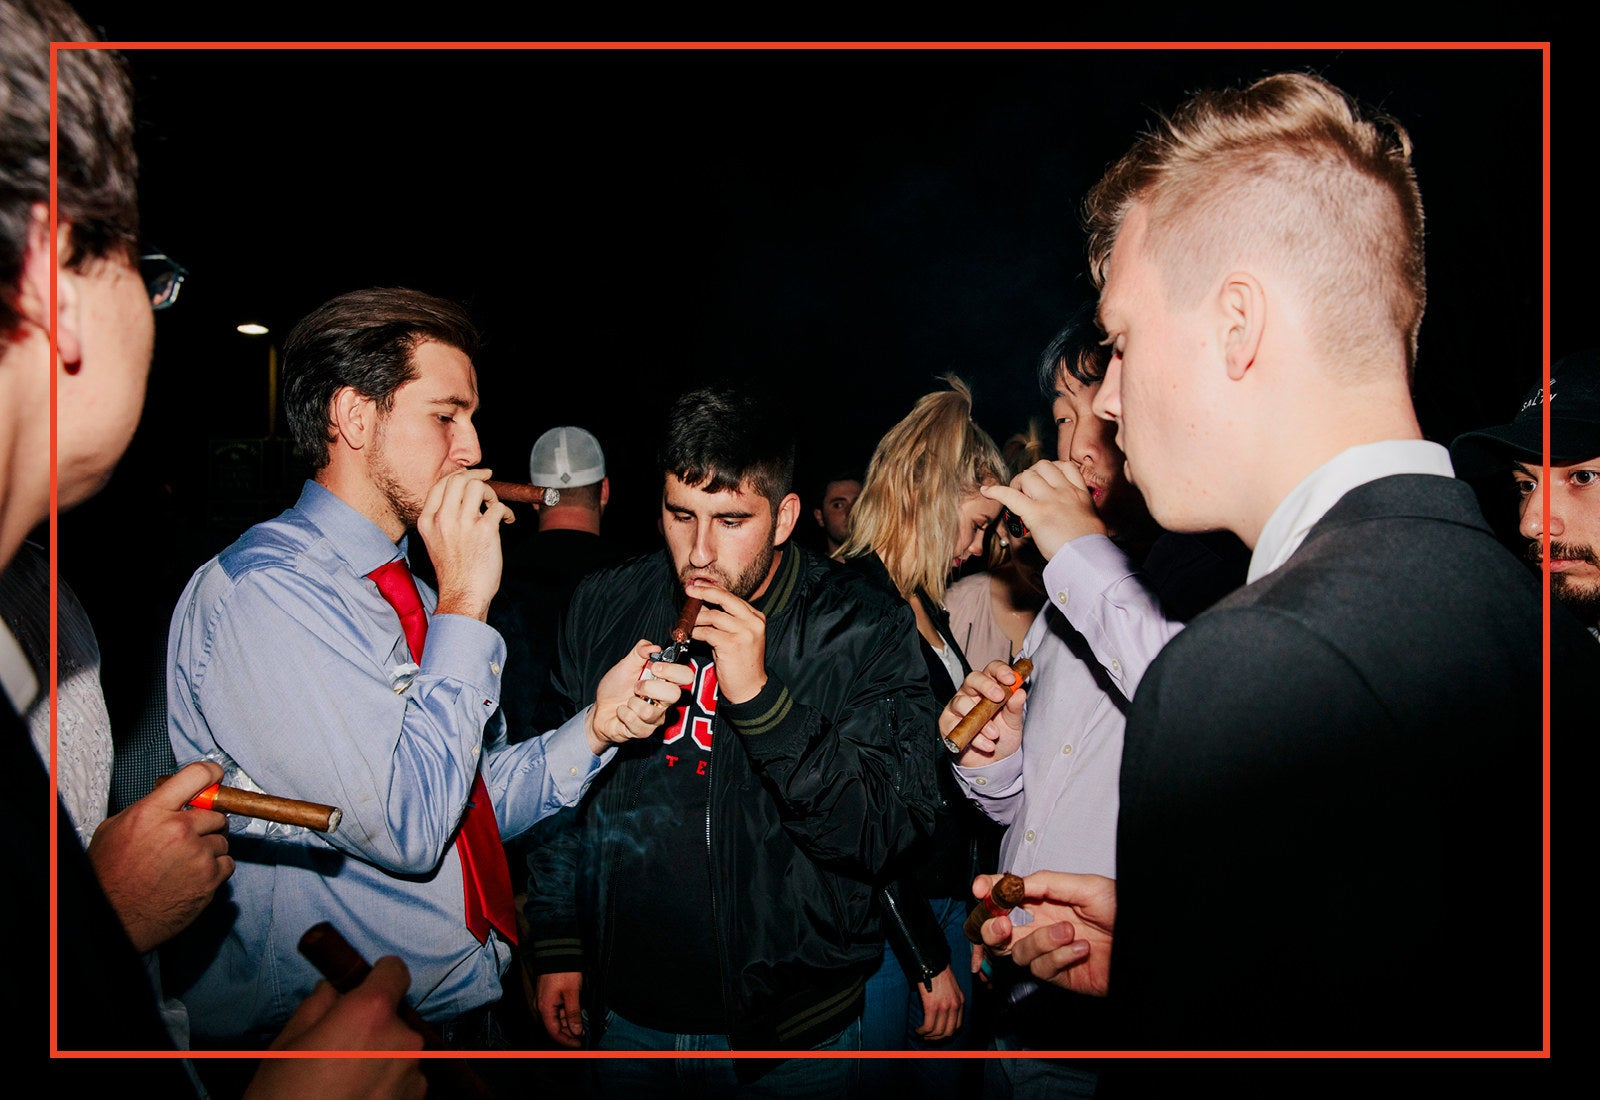 Members of the California College Republicans light and smoke cigars at the cigar social event on the first night of the three-day convention in Santa Barbara, California on April 6, 2018.